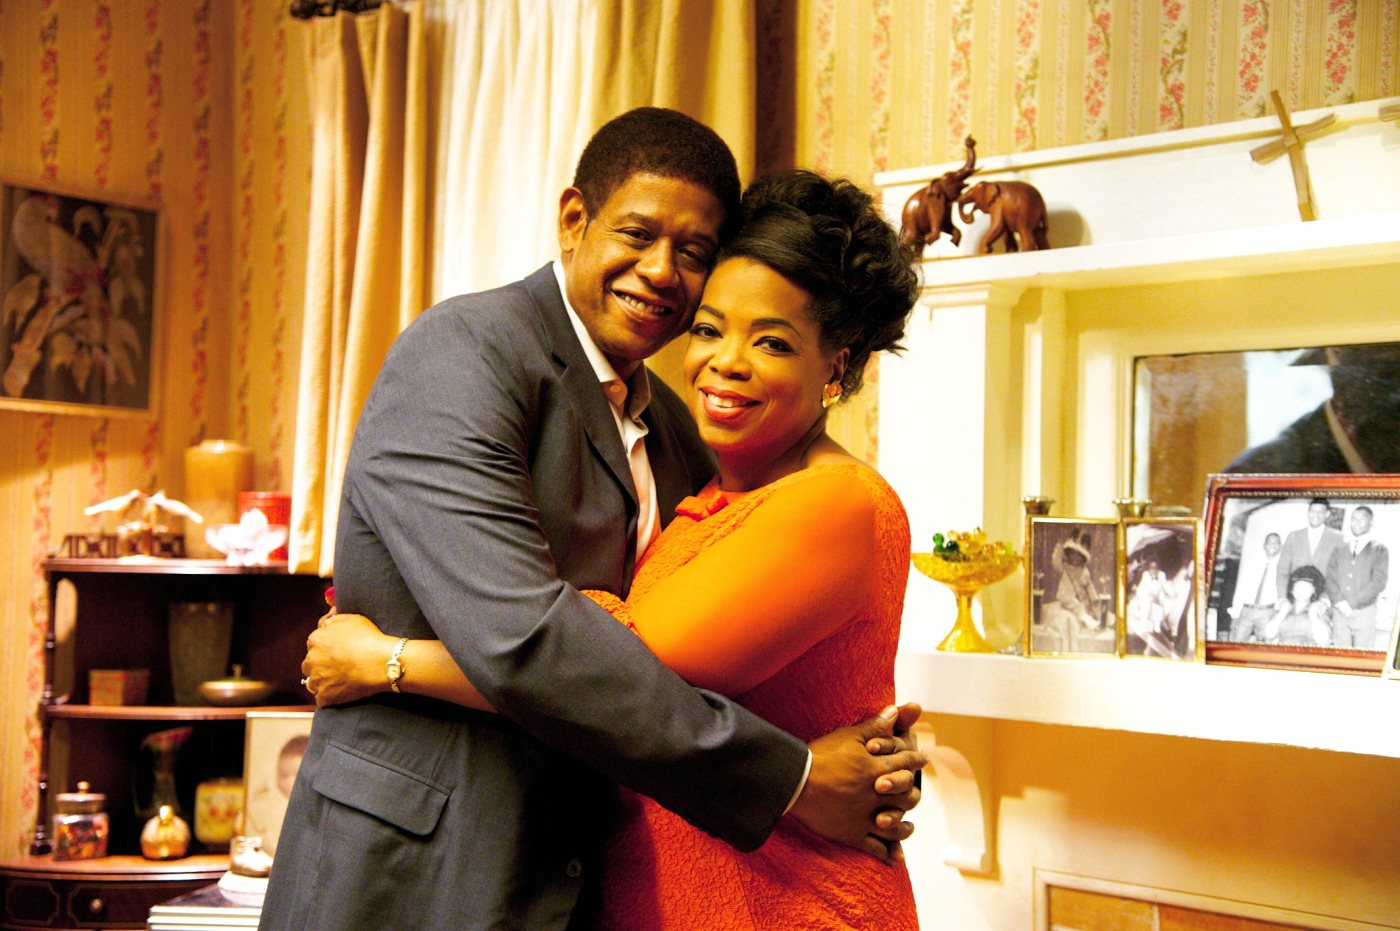 critique du film le majordome lee daniels 39 the butler de lee daniels. Black Bedroom Furniture Sets. Home Design Ideas